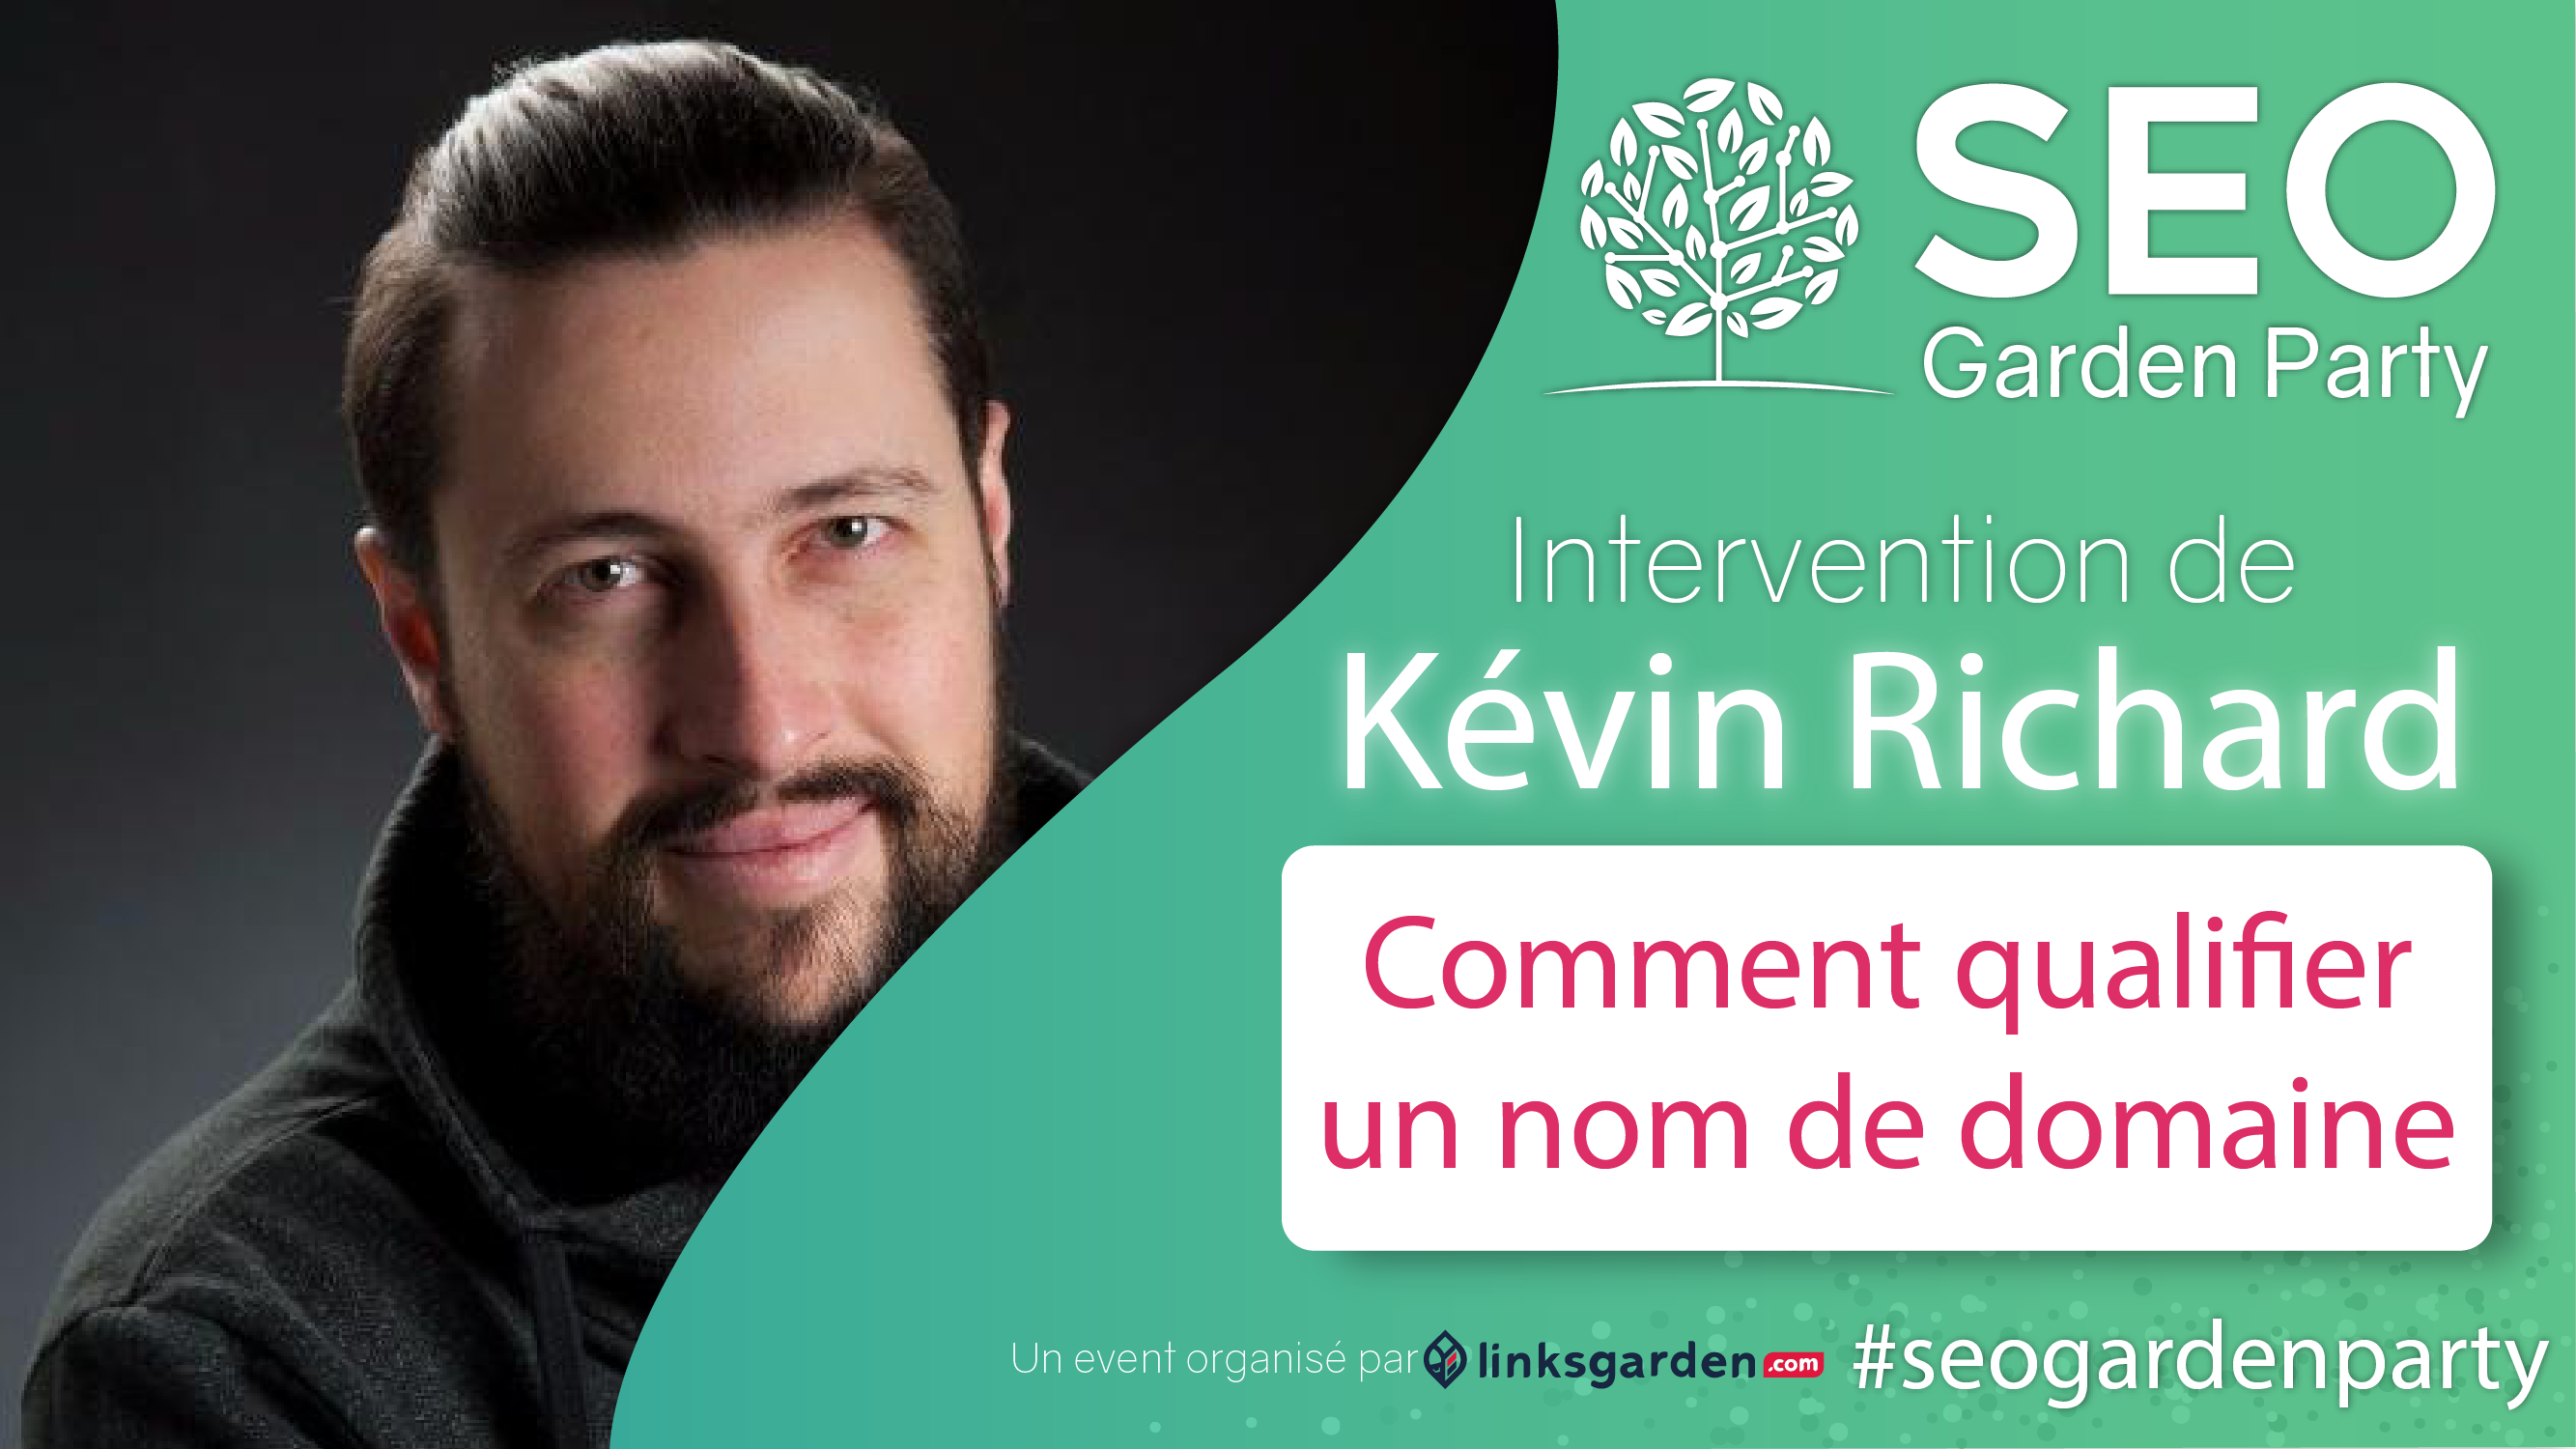 Kévin Richard seo garden party par linksgarden